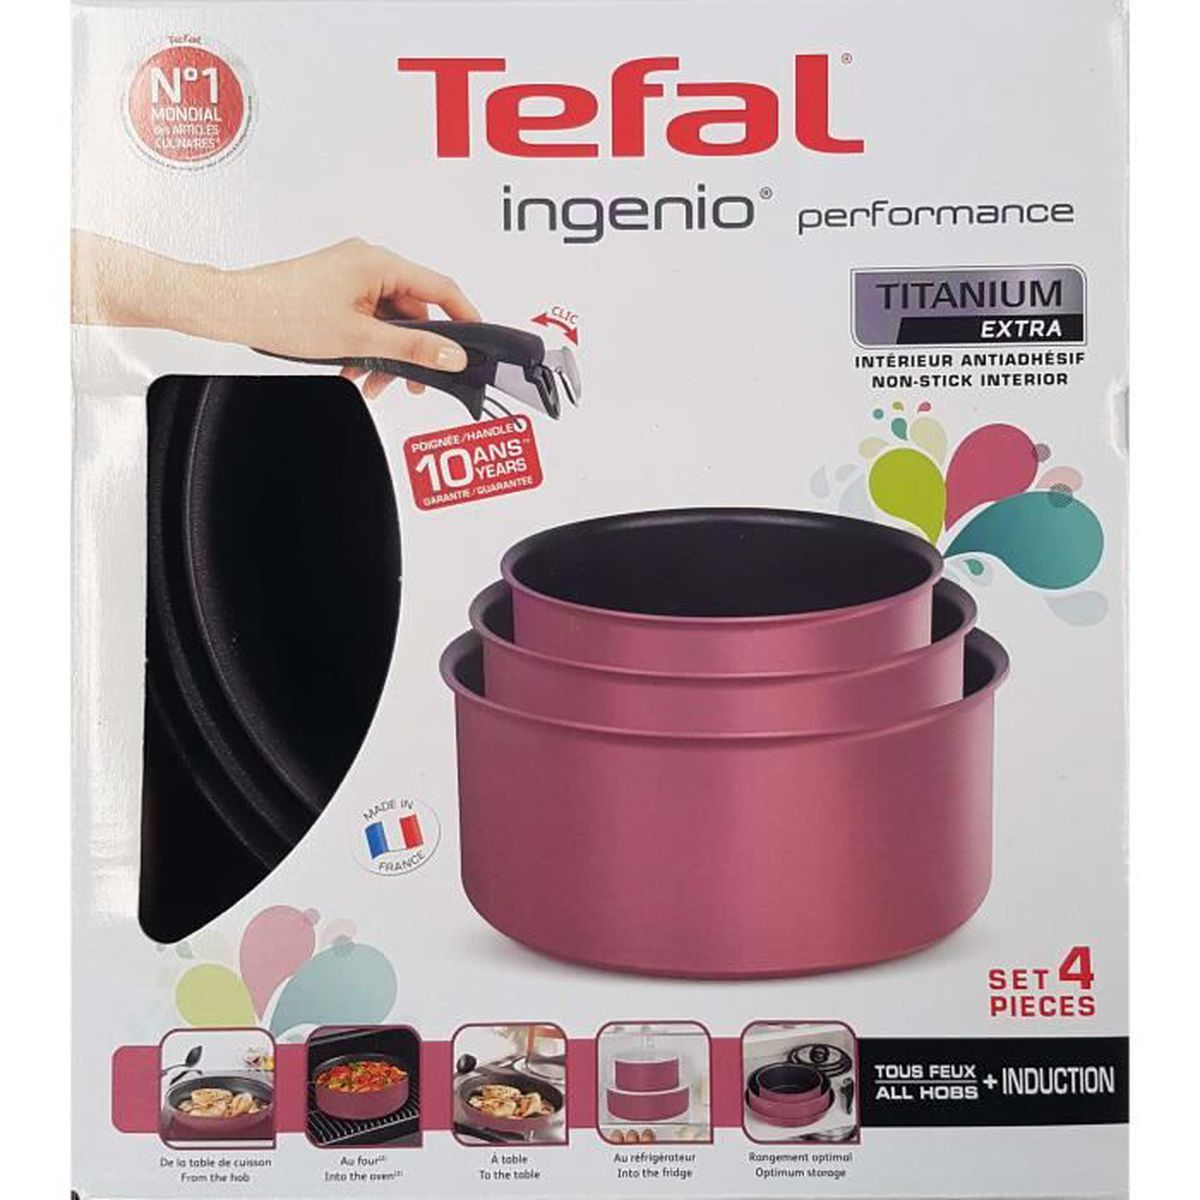 tefal ing nio performance l6569808 set de 3 casseroles 16 18 20 cm une poign e amovible. Black Bedroom Furniture Sets. Home Design Ideas